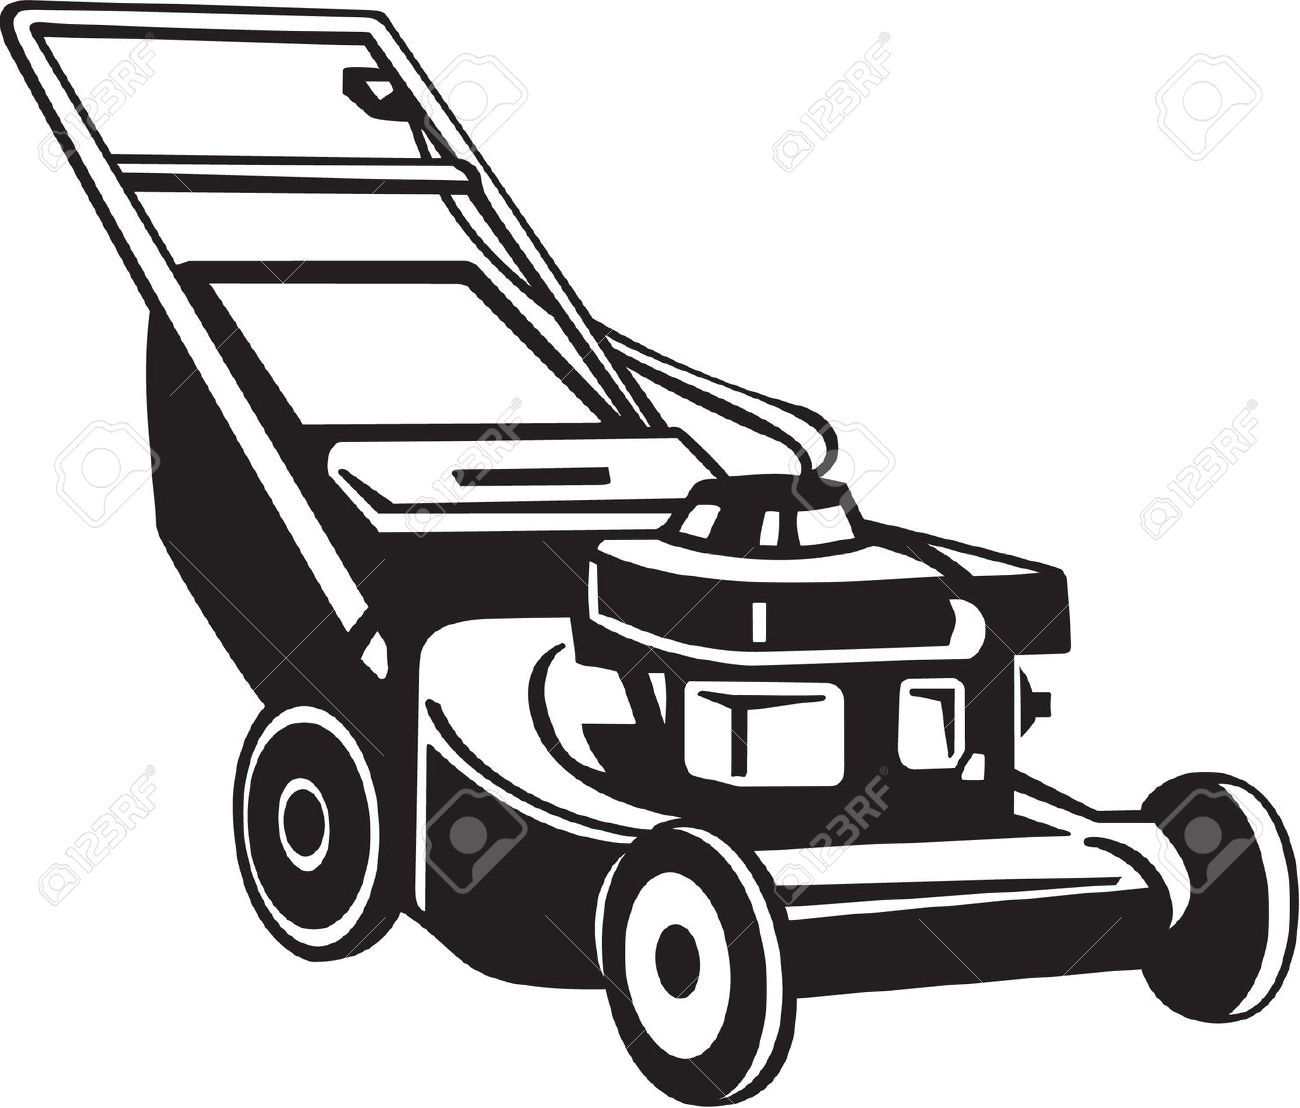 Mowing clipart small engine. Animated lawn mower free